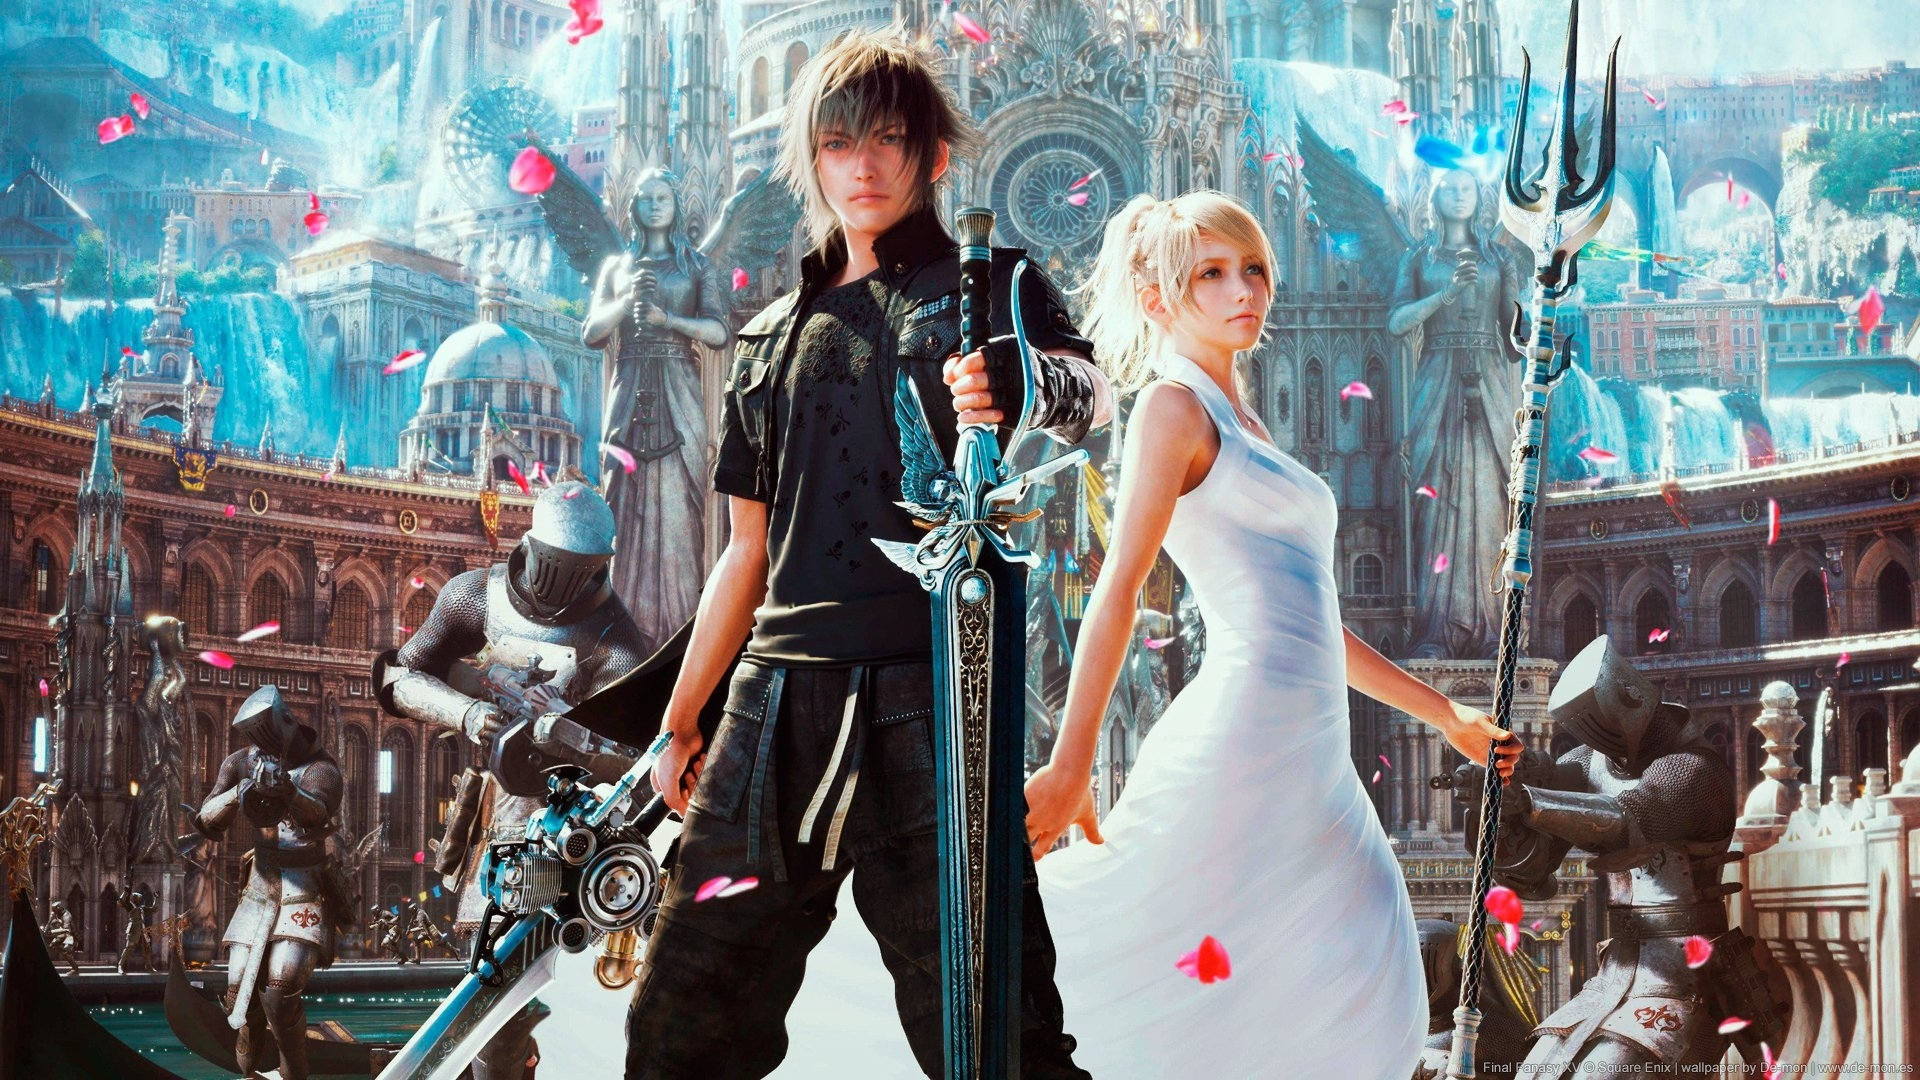 97 final fantasy xv hd wallpapers   background images - wallpaper